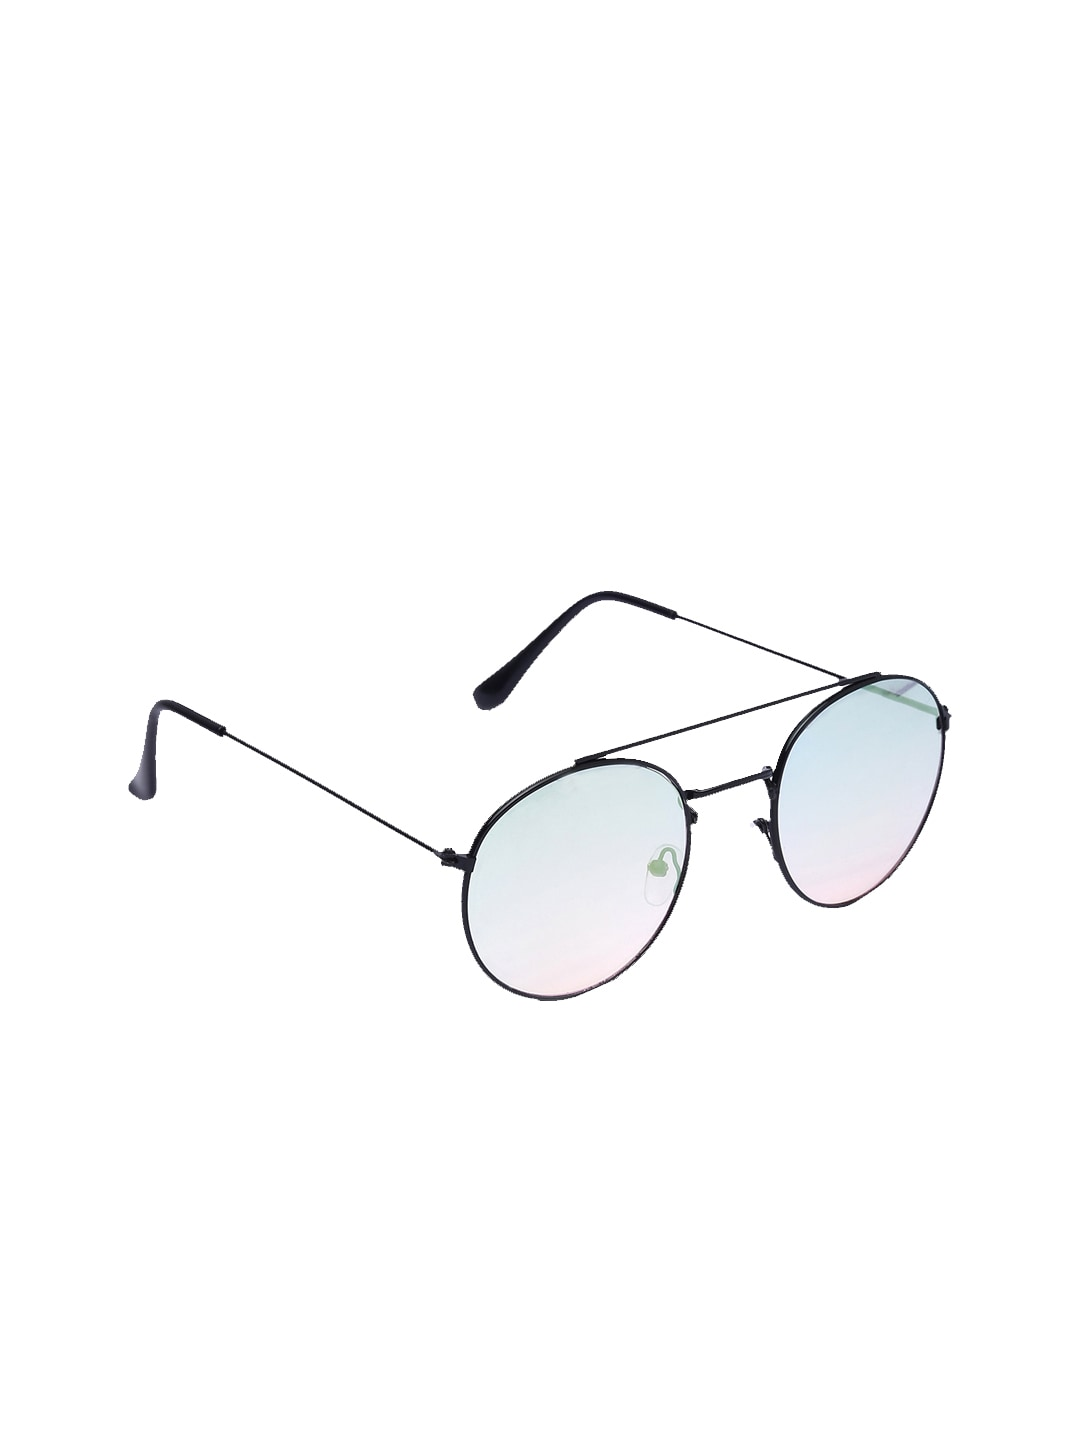 71806c8a72 Round Sunglasses - Buy Round Sunglasses online in India